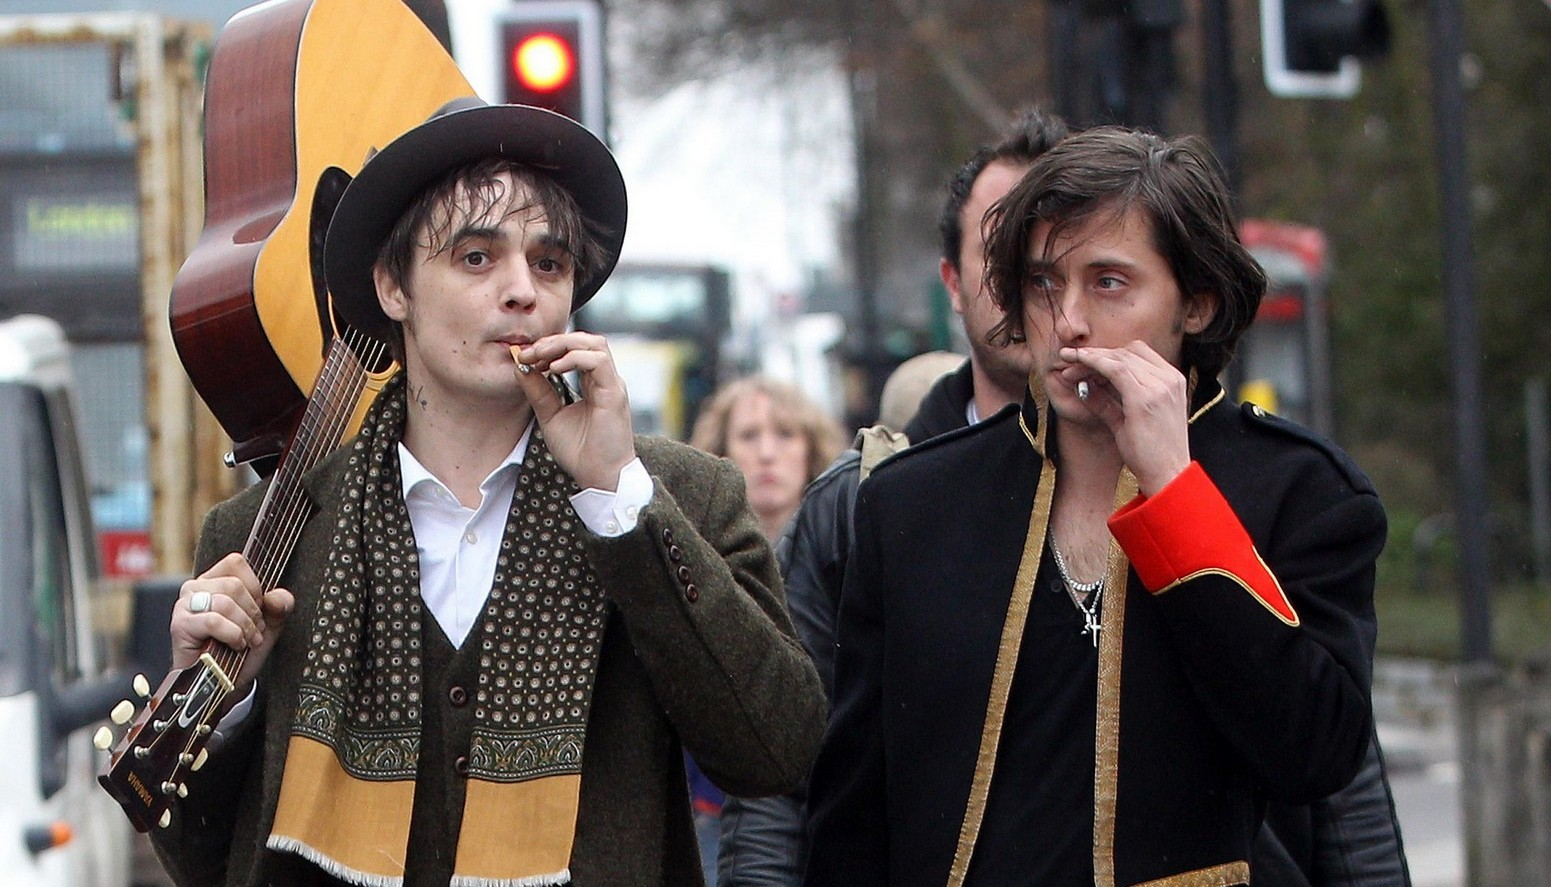 http://1.bp.blogspot.com/-Zo2wpIeibew/TgpL3H0TPQI/AAAAAAAAGpE/9jownOzyloY/s1600/Pete-Doherty-retrouve-The-Libertines-pour-payer-ses-impots.jpg